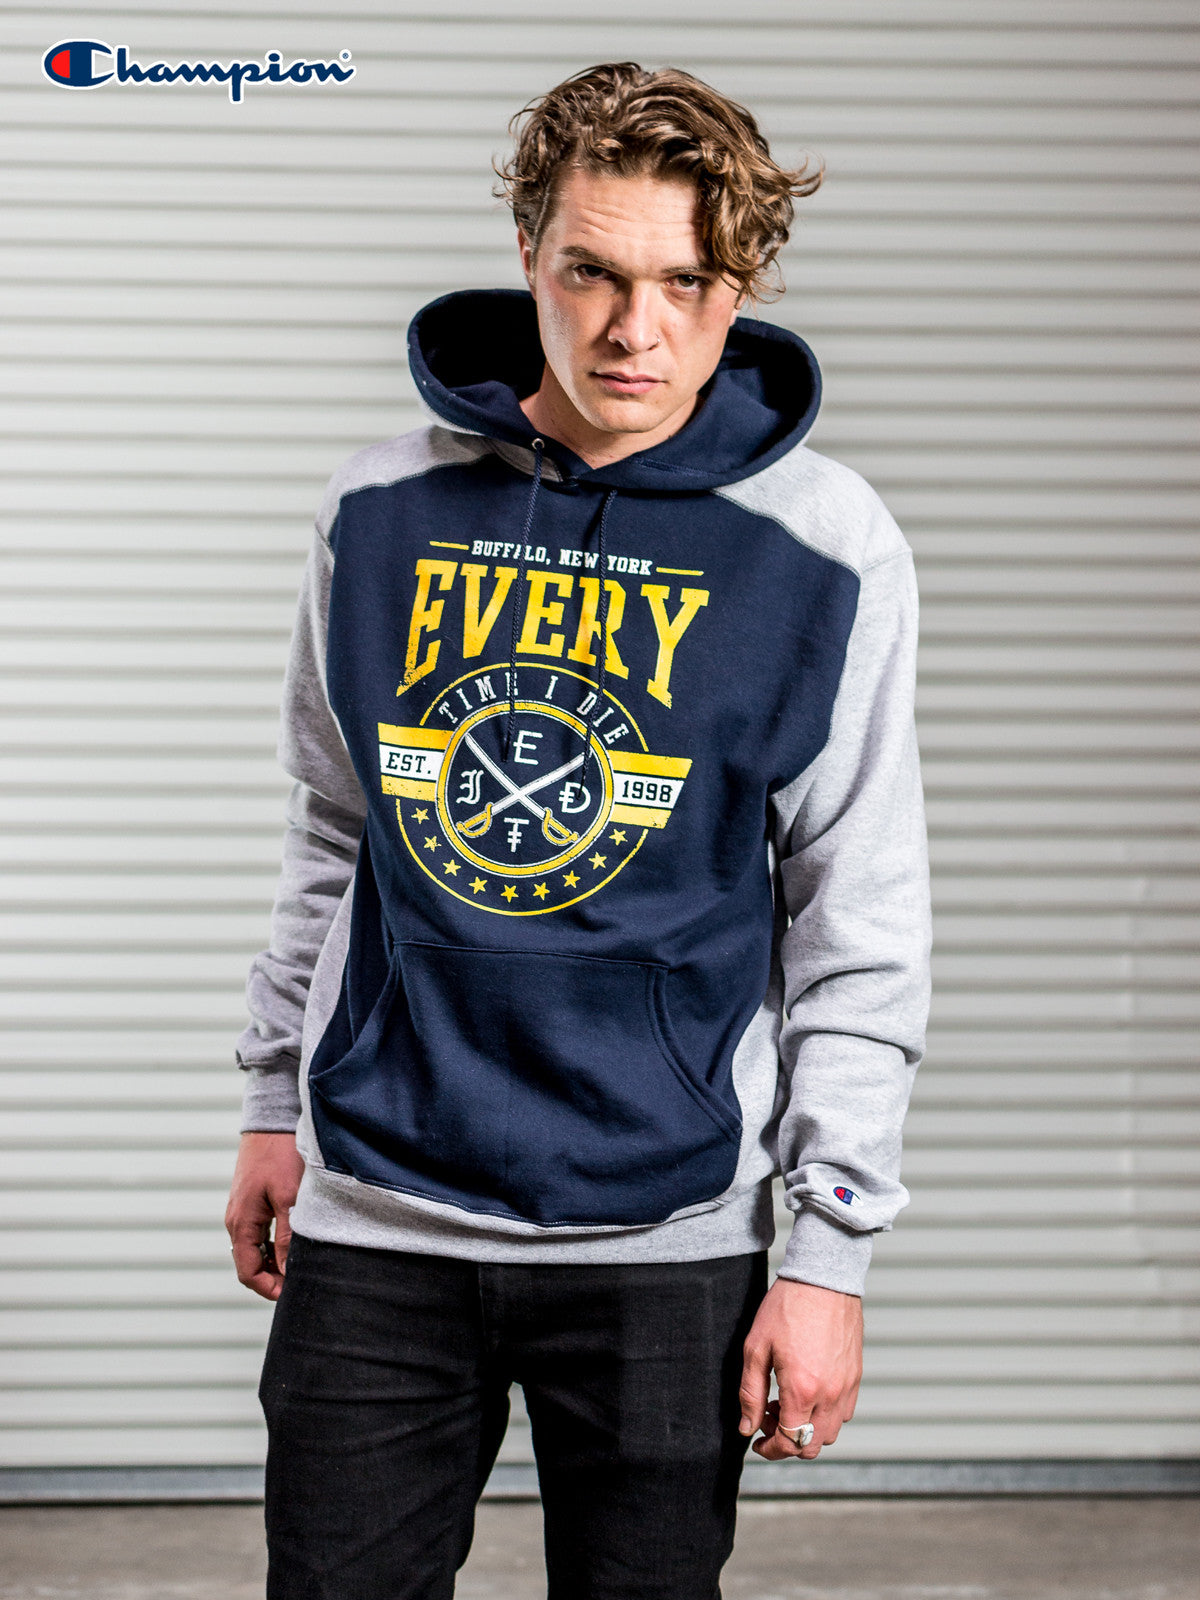 Every Time I Die - Champion Hoodie - MerchLimited - 1